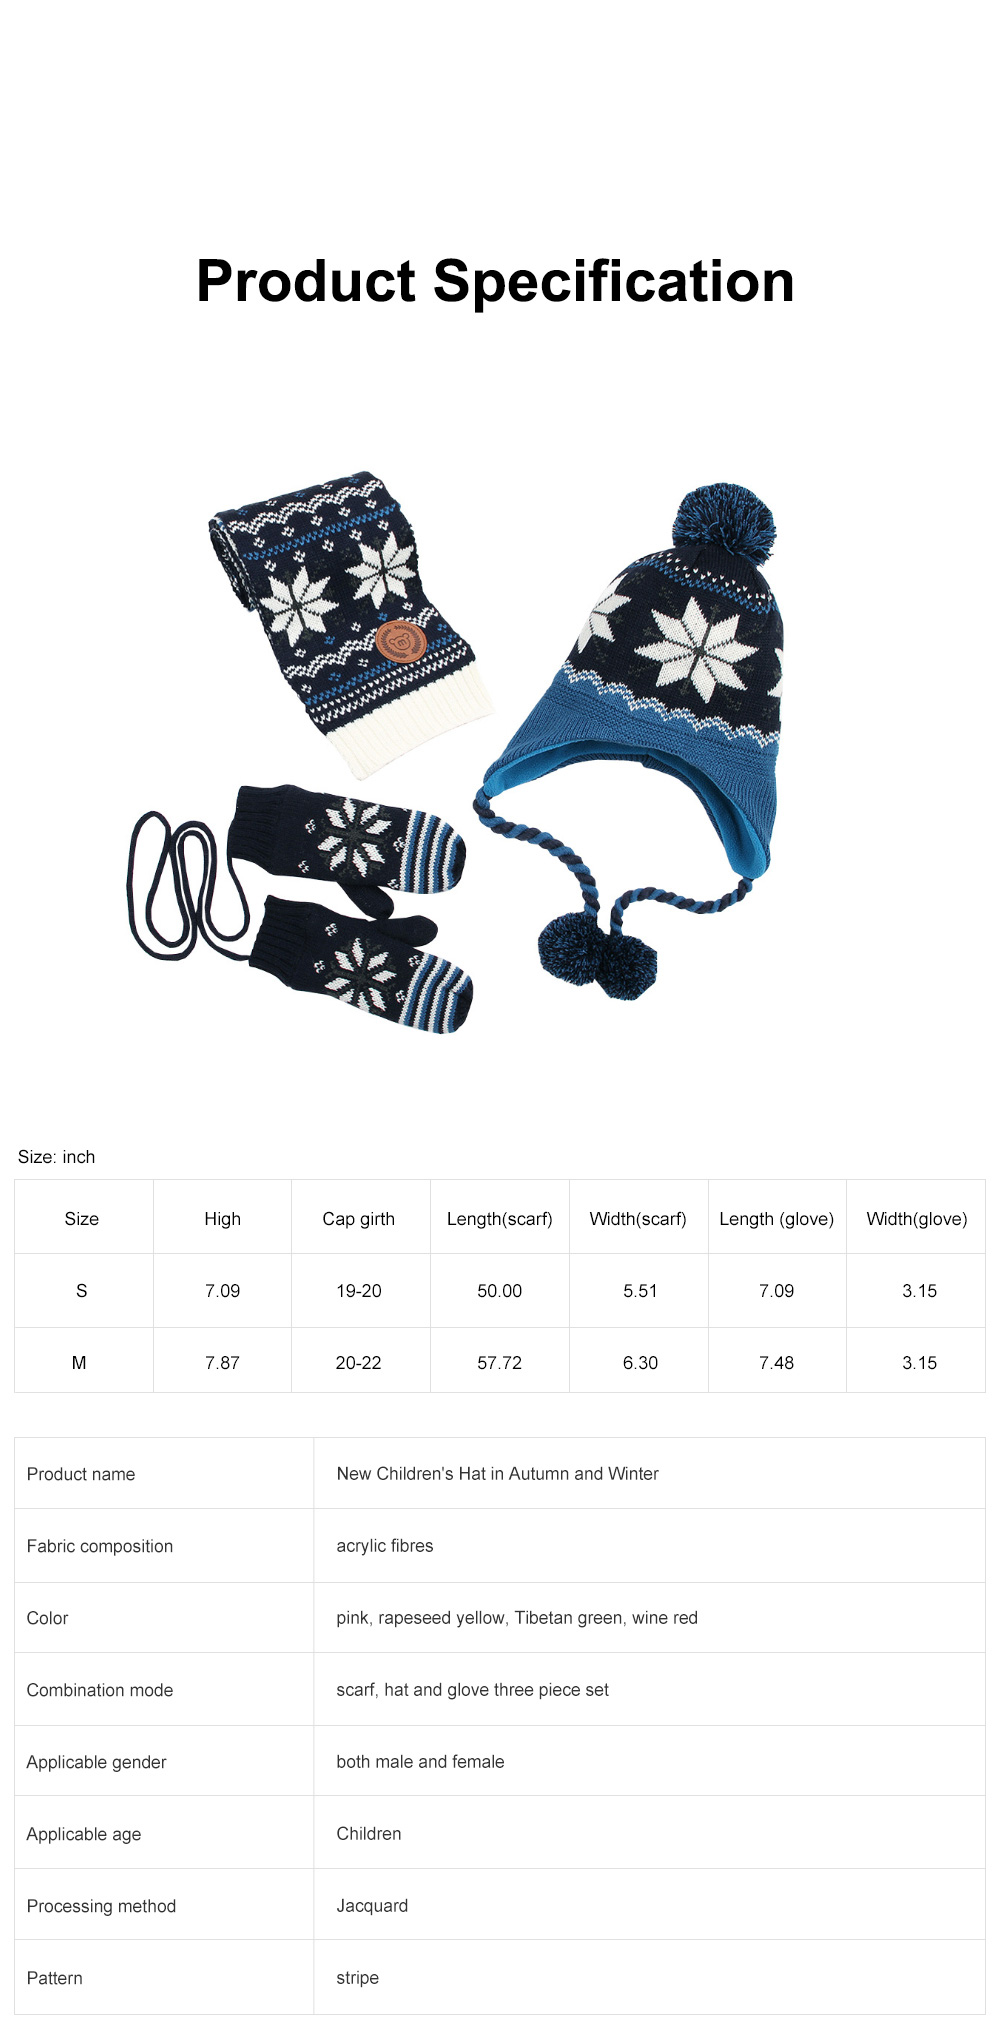 New Children's Hat Warm and Plush Hat for Boys and Girls Snow Flake Decorated Christmas Style Autumn Winter Hat 6